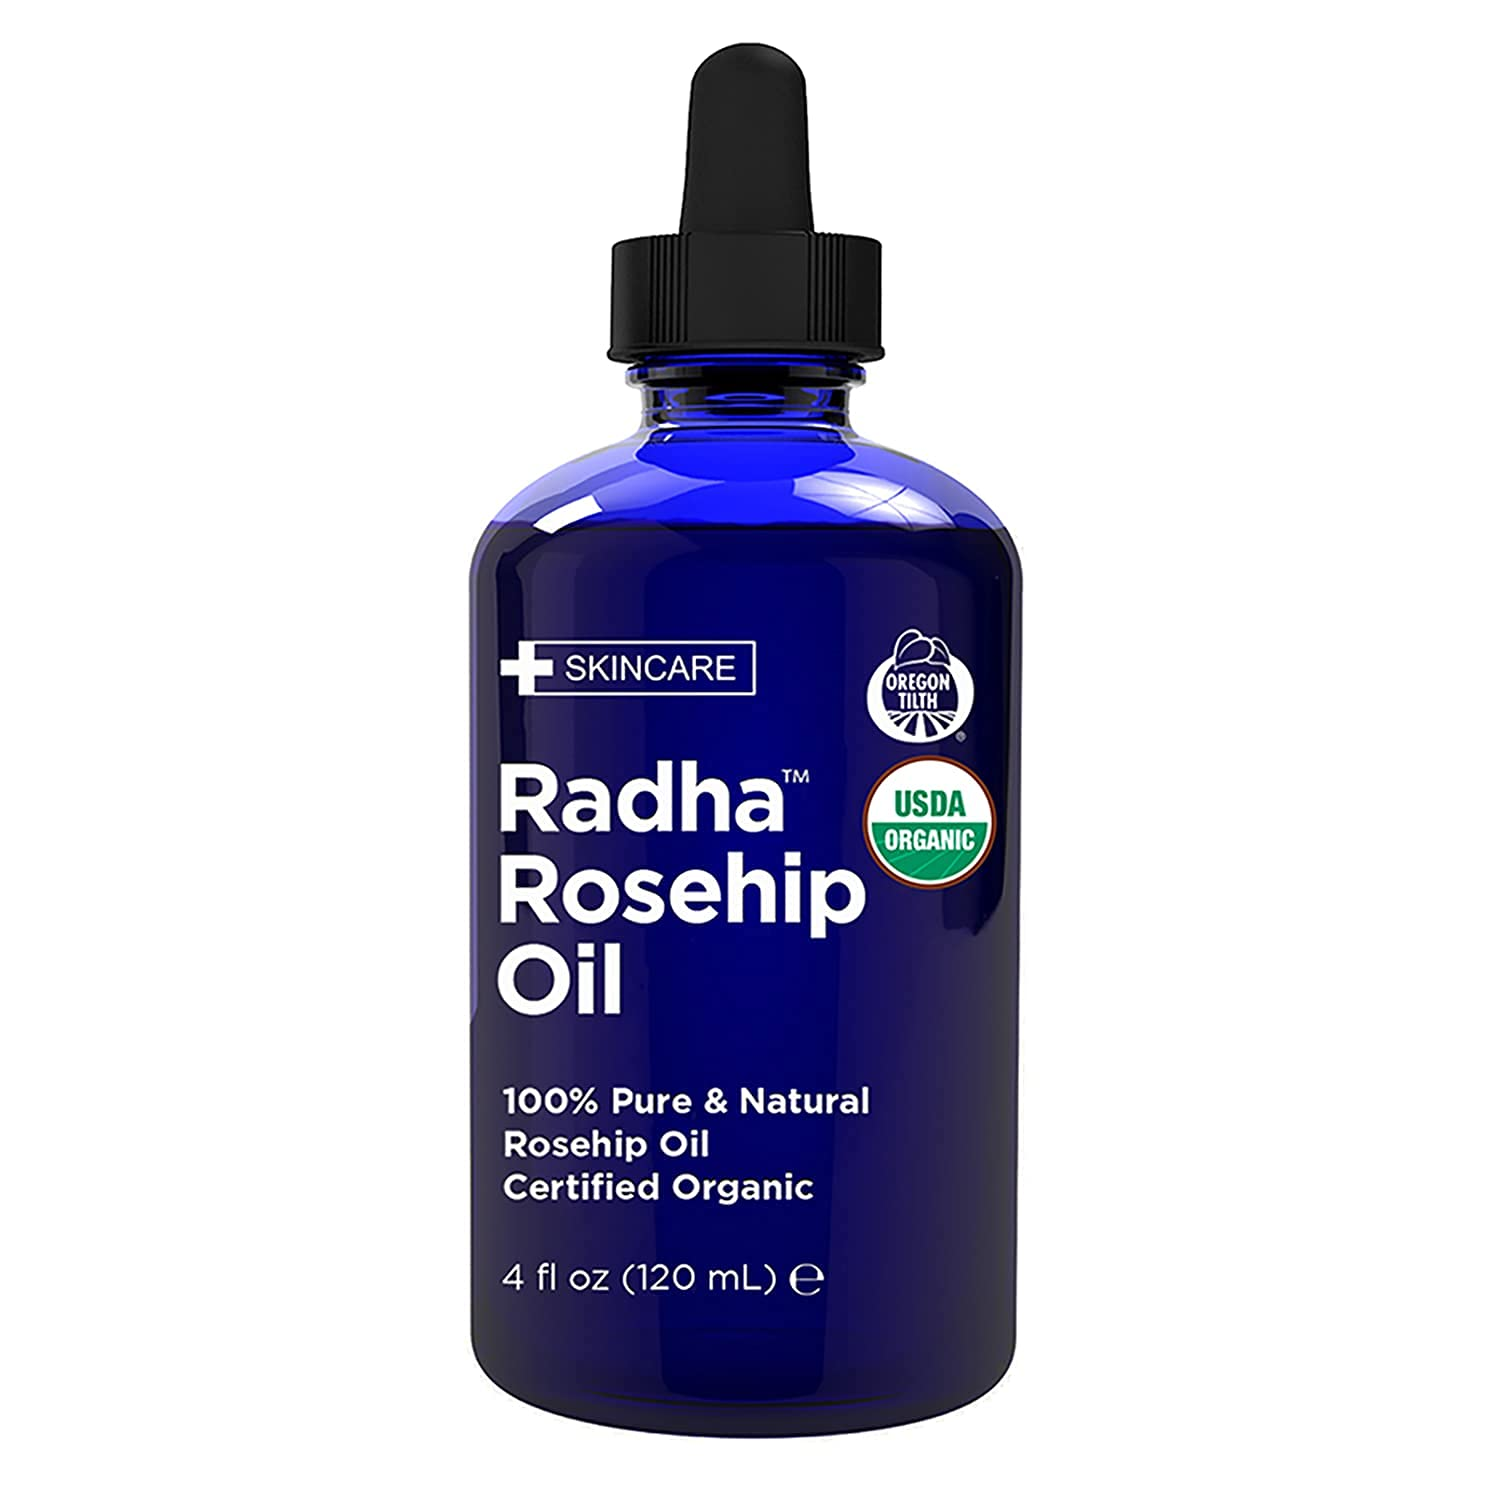 Radha Beauty USDA Certified Organic Rosehip Oil, 100% Pure Cold Pressed - Great Carrier Oil for Moisturizing Face, Hair, Skin, & Nails - 4 fl oz